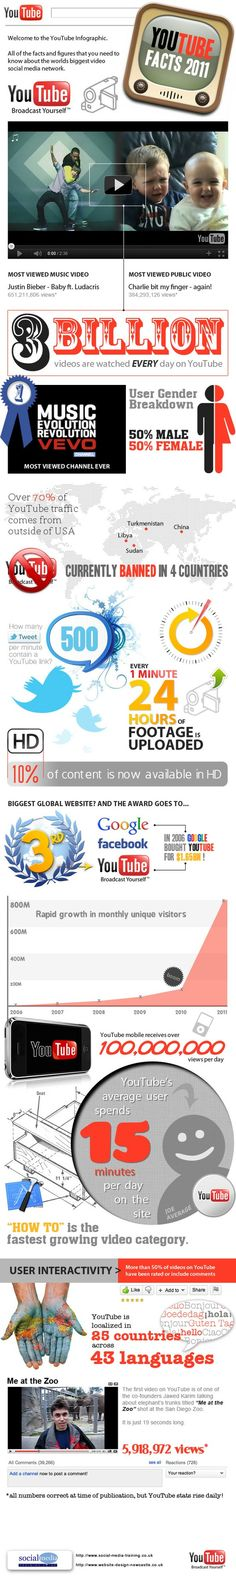 YouTube Fact 2011. All the facts and figures you need to know about the worlds biggest video social network.